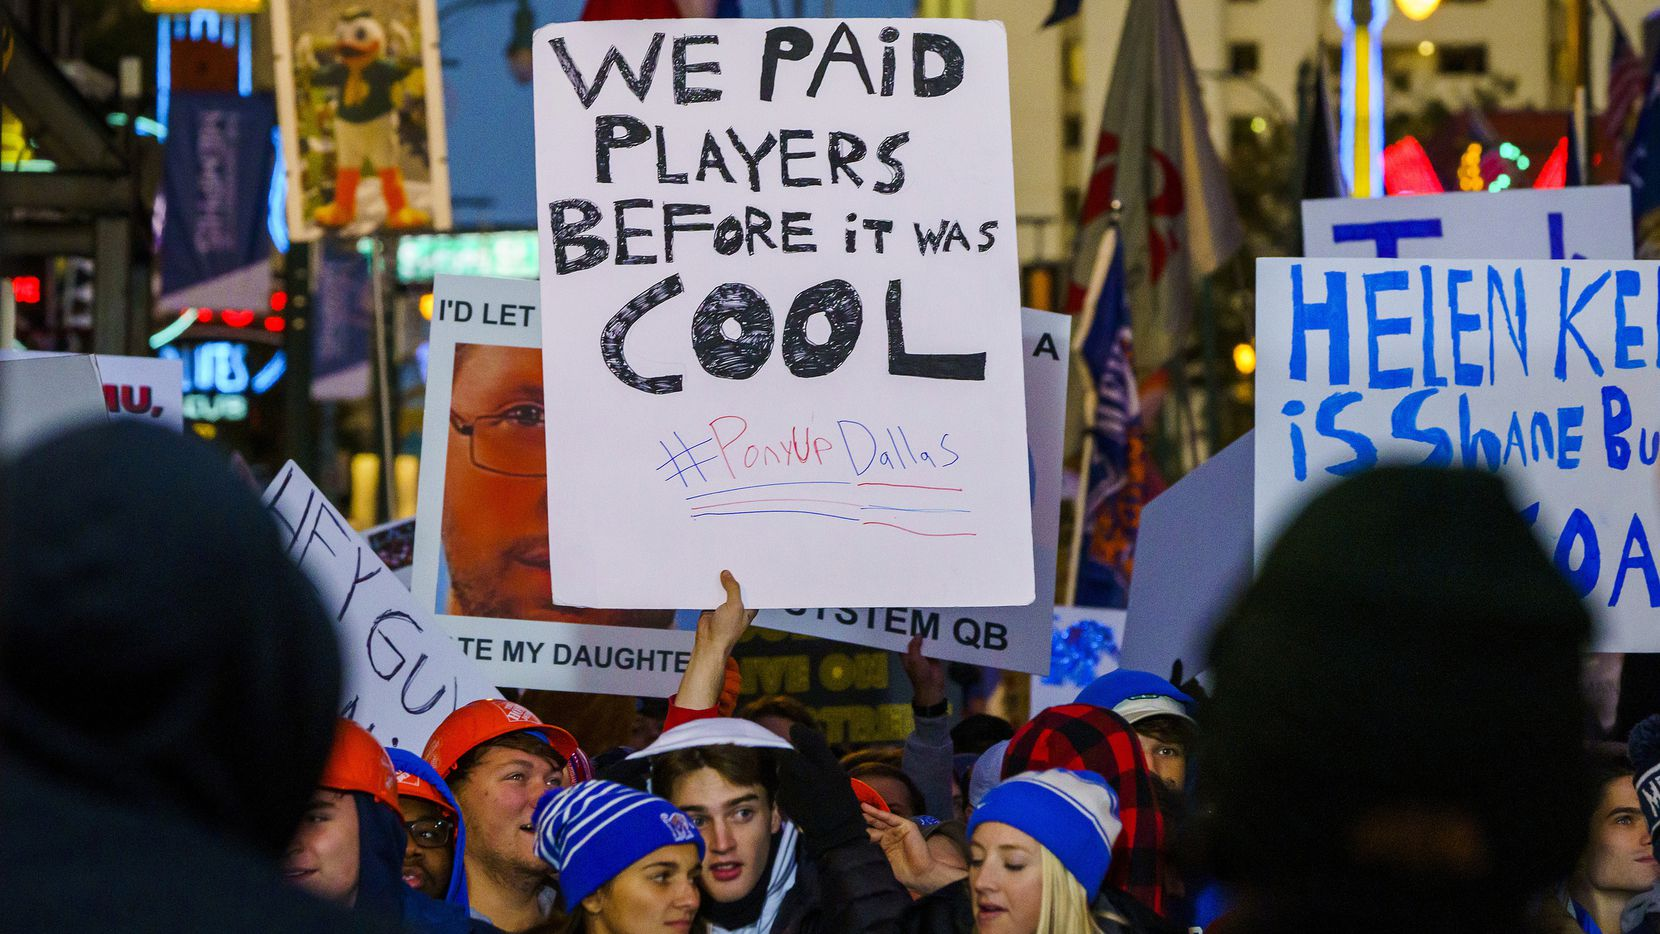 A fan holds up a sign reading ÒWe Paid Players Before it was Cool,Ó during ESPN College GameDay before an NCAA football game between Memphis and SMU on Saturday, Nov. 2, 2019, in Memphis, Tenn.